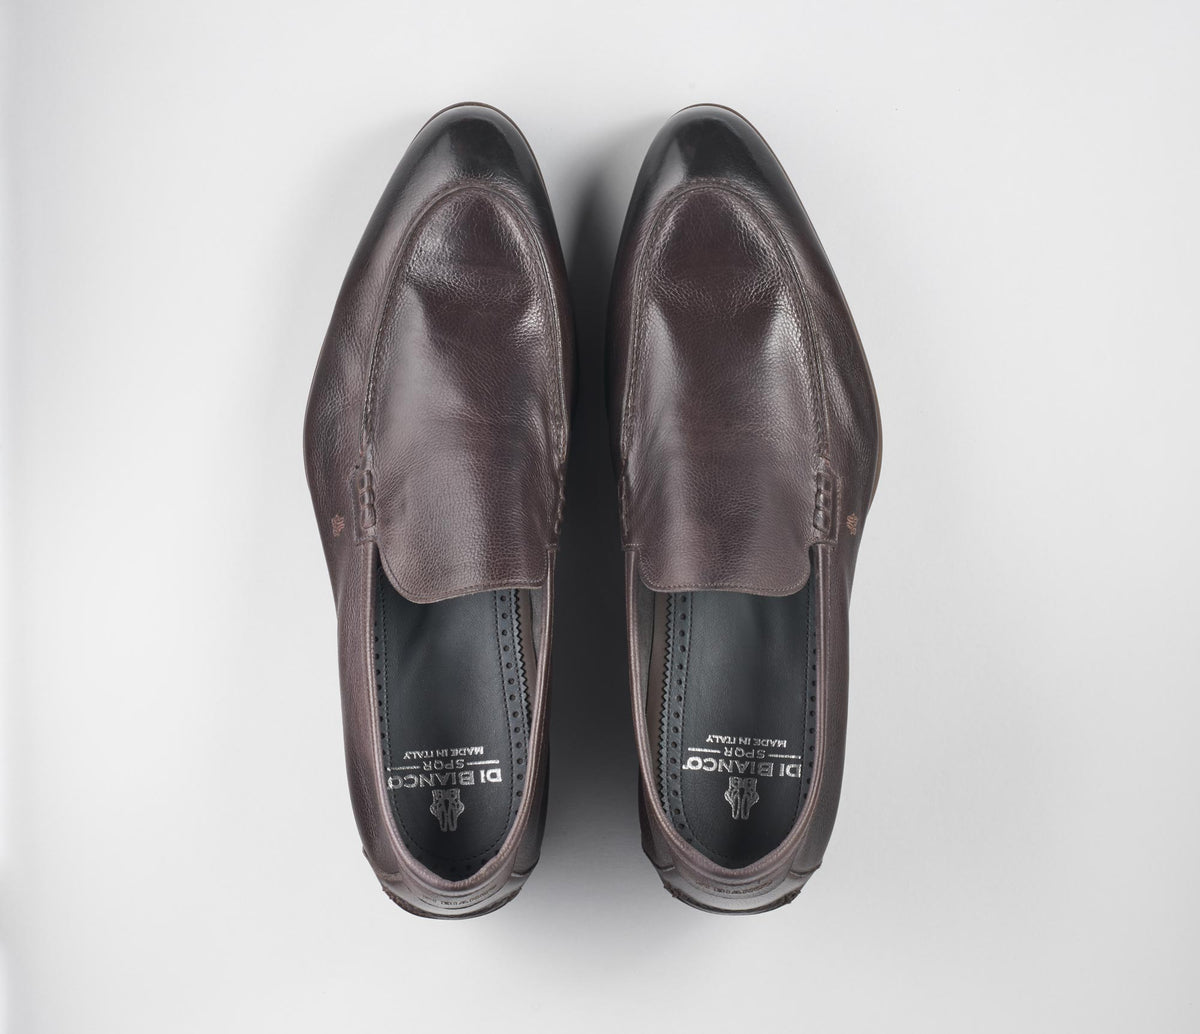 The Etna Pavimento  Men's Loafers